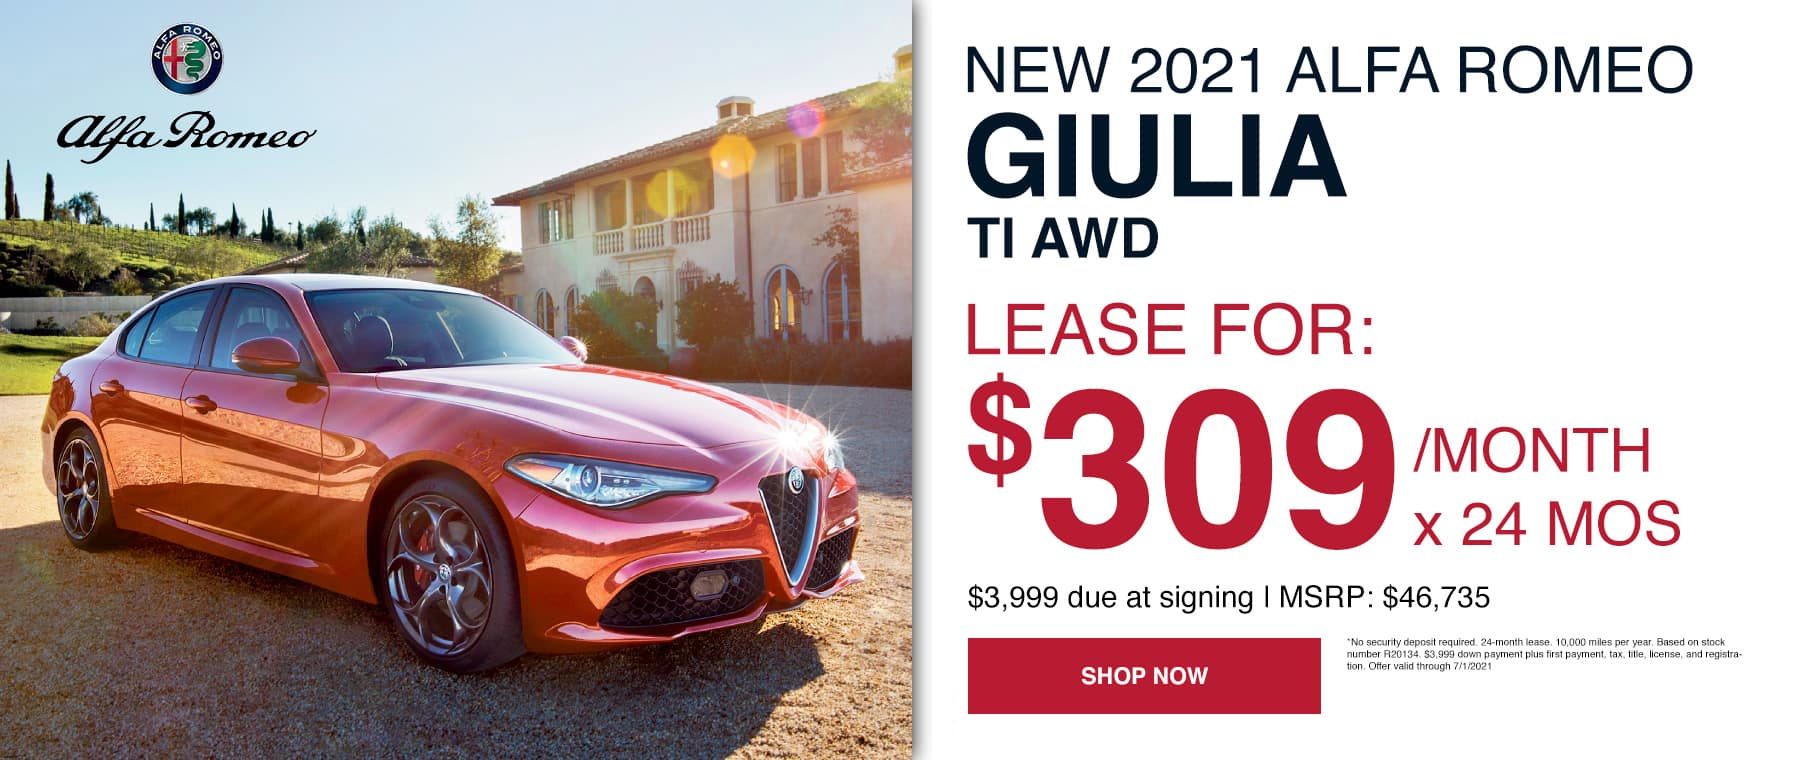 Lease for: $309/month x 24 mos $3,999 due at signing | MSRP: $46,735